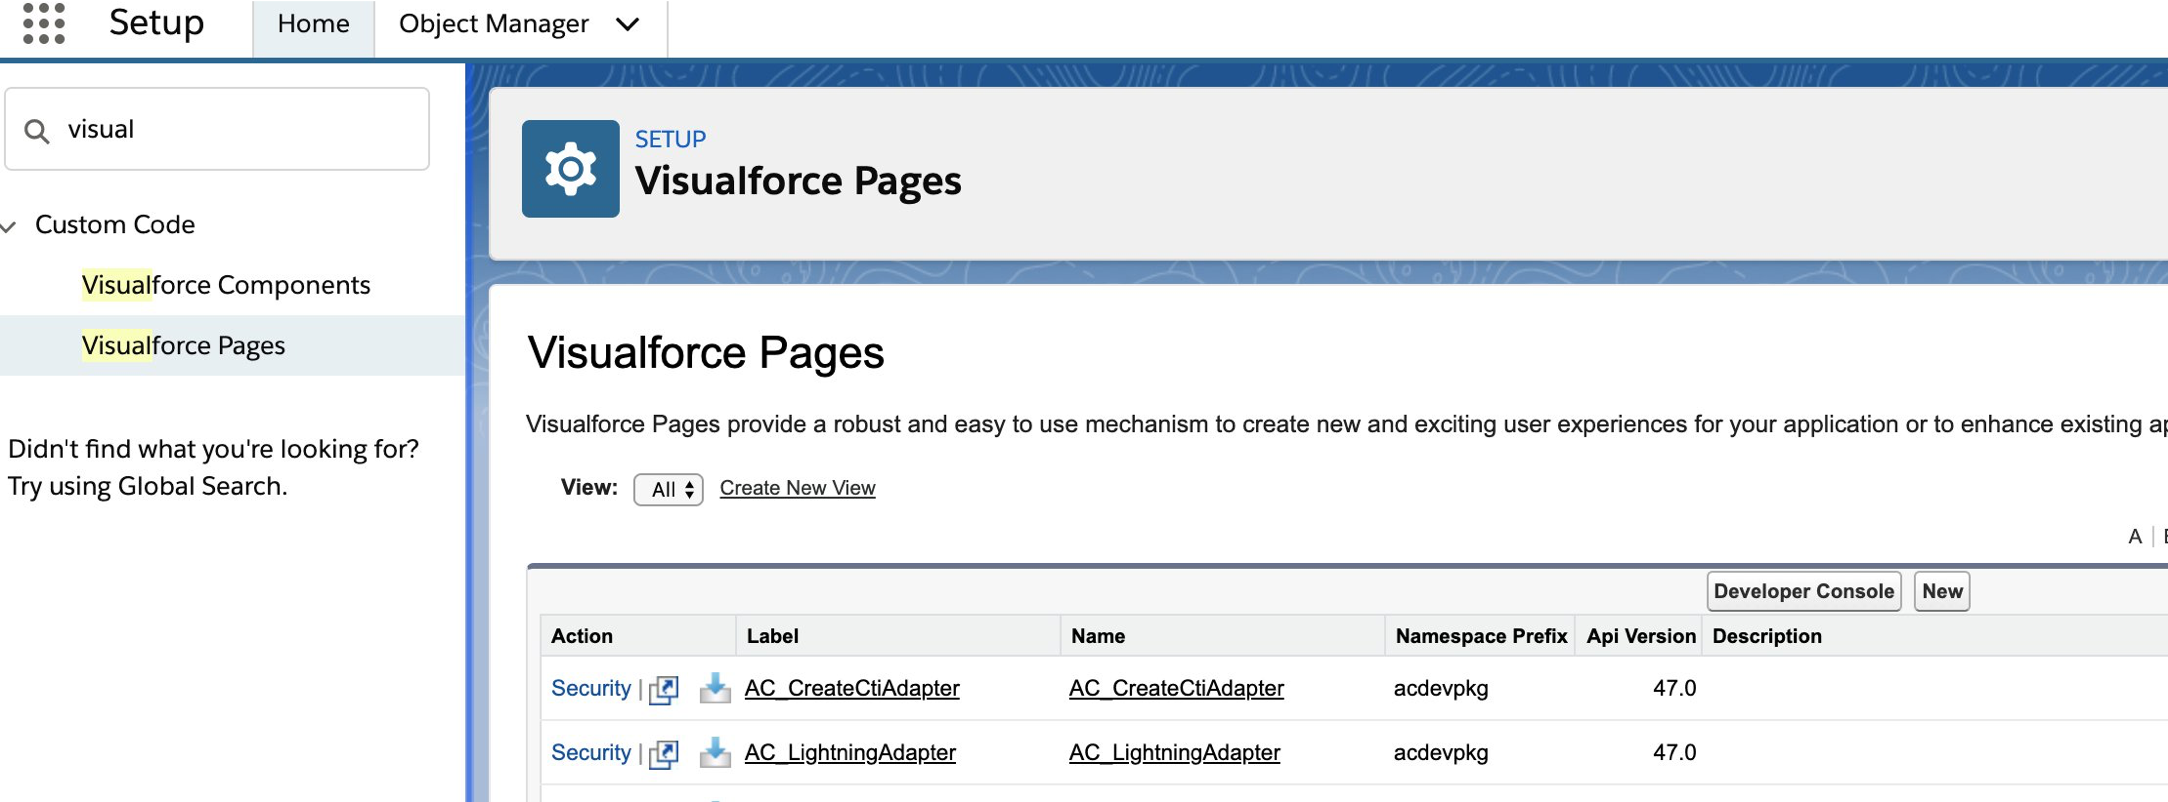 Visualforce Pages in Setup